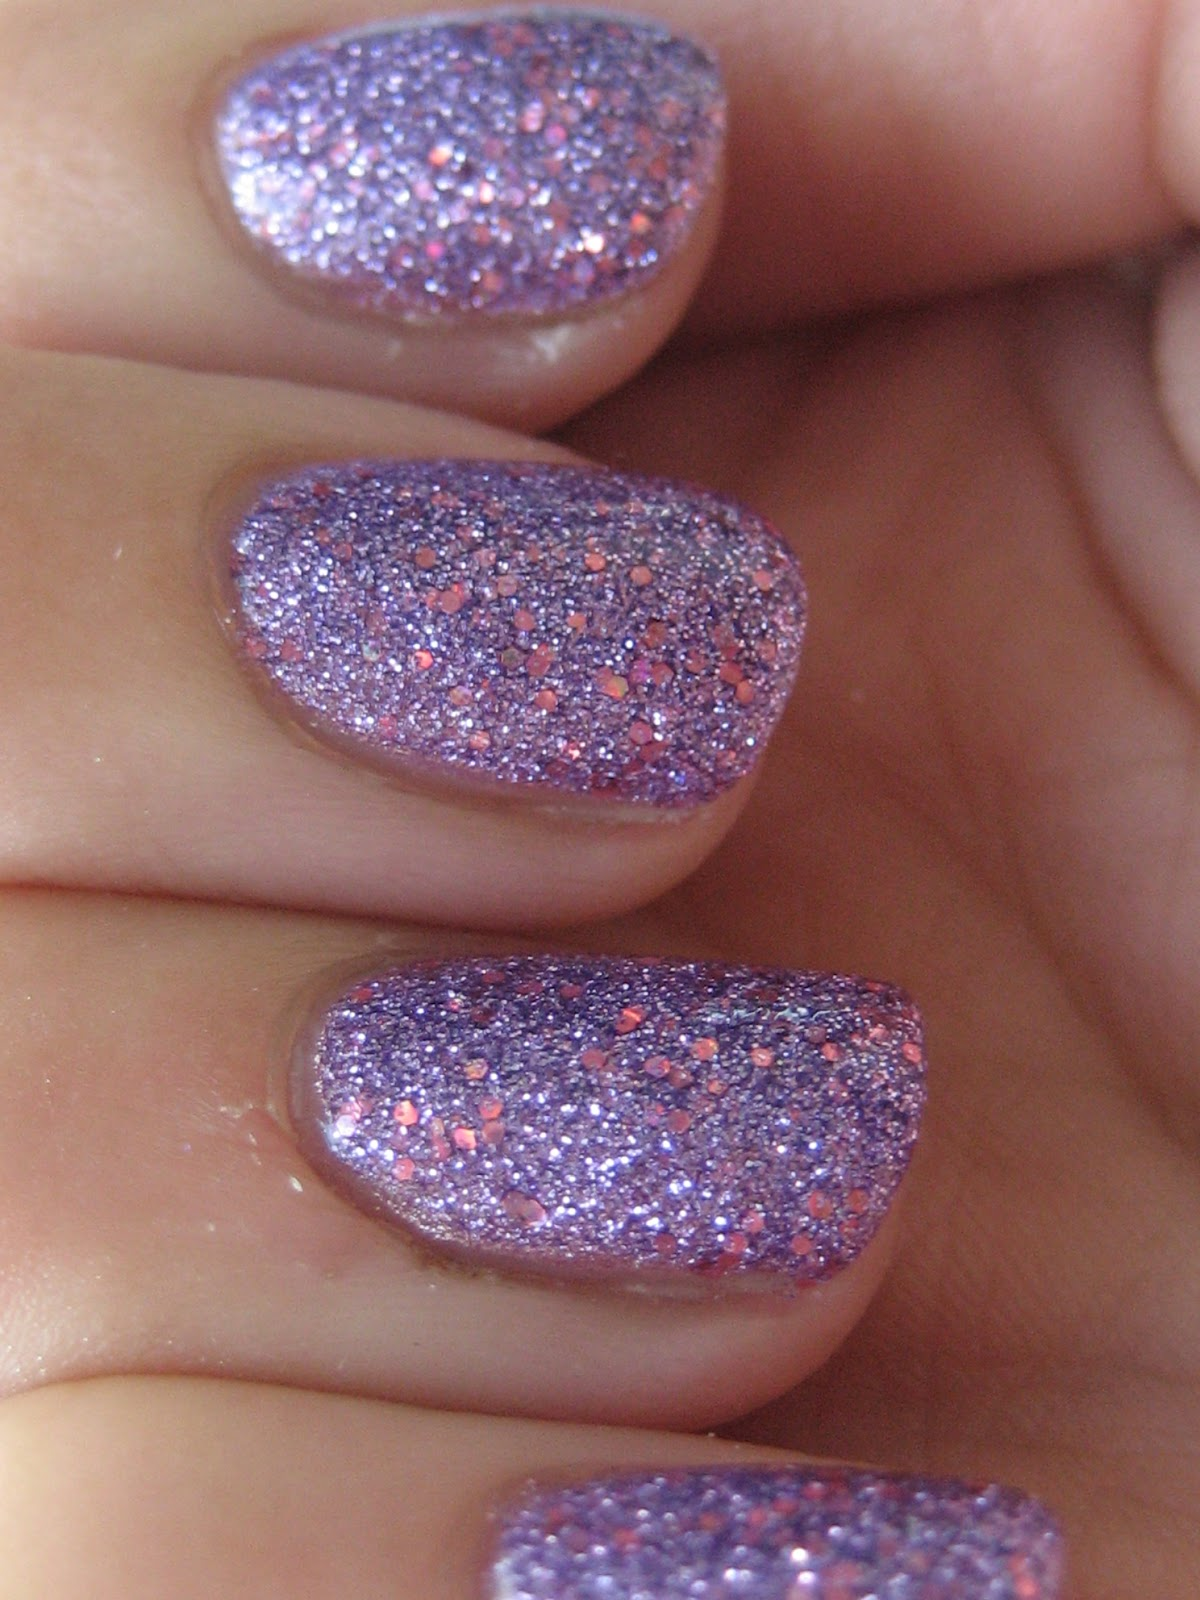 Ombre Glitter Eye Makeup Brushes Set Rose Gold In Make Up: Nail & Polish: Pink Glitter Nails + My Ombre Hair